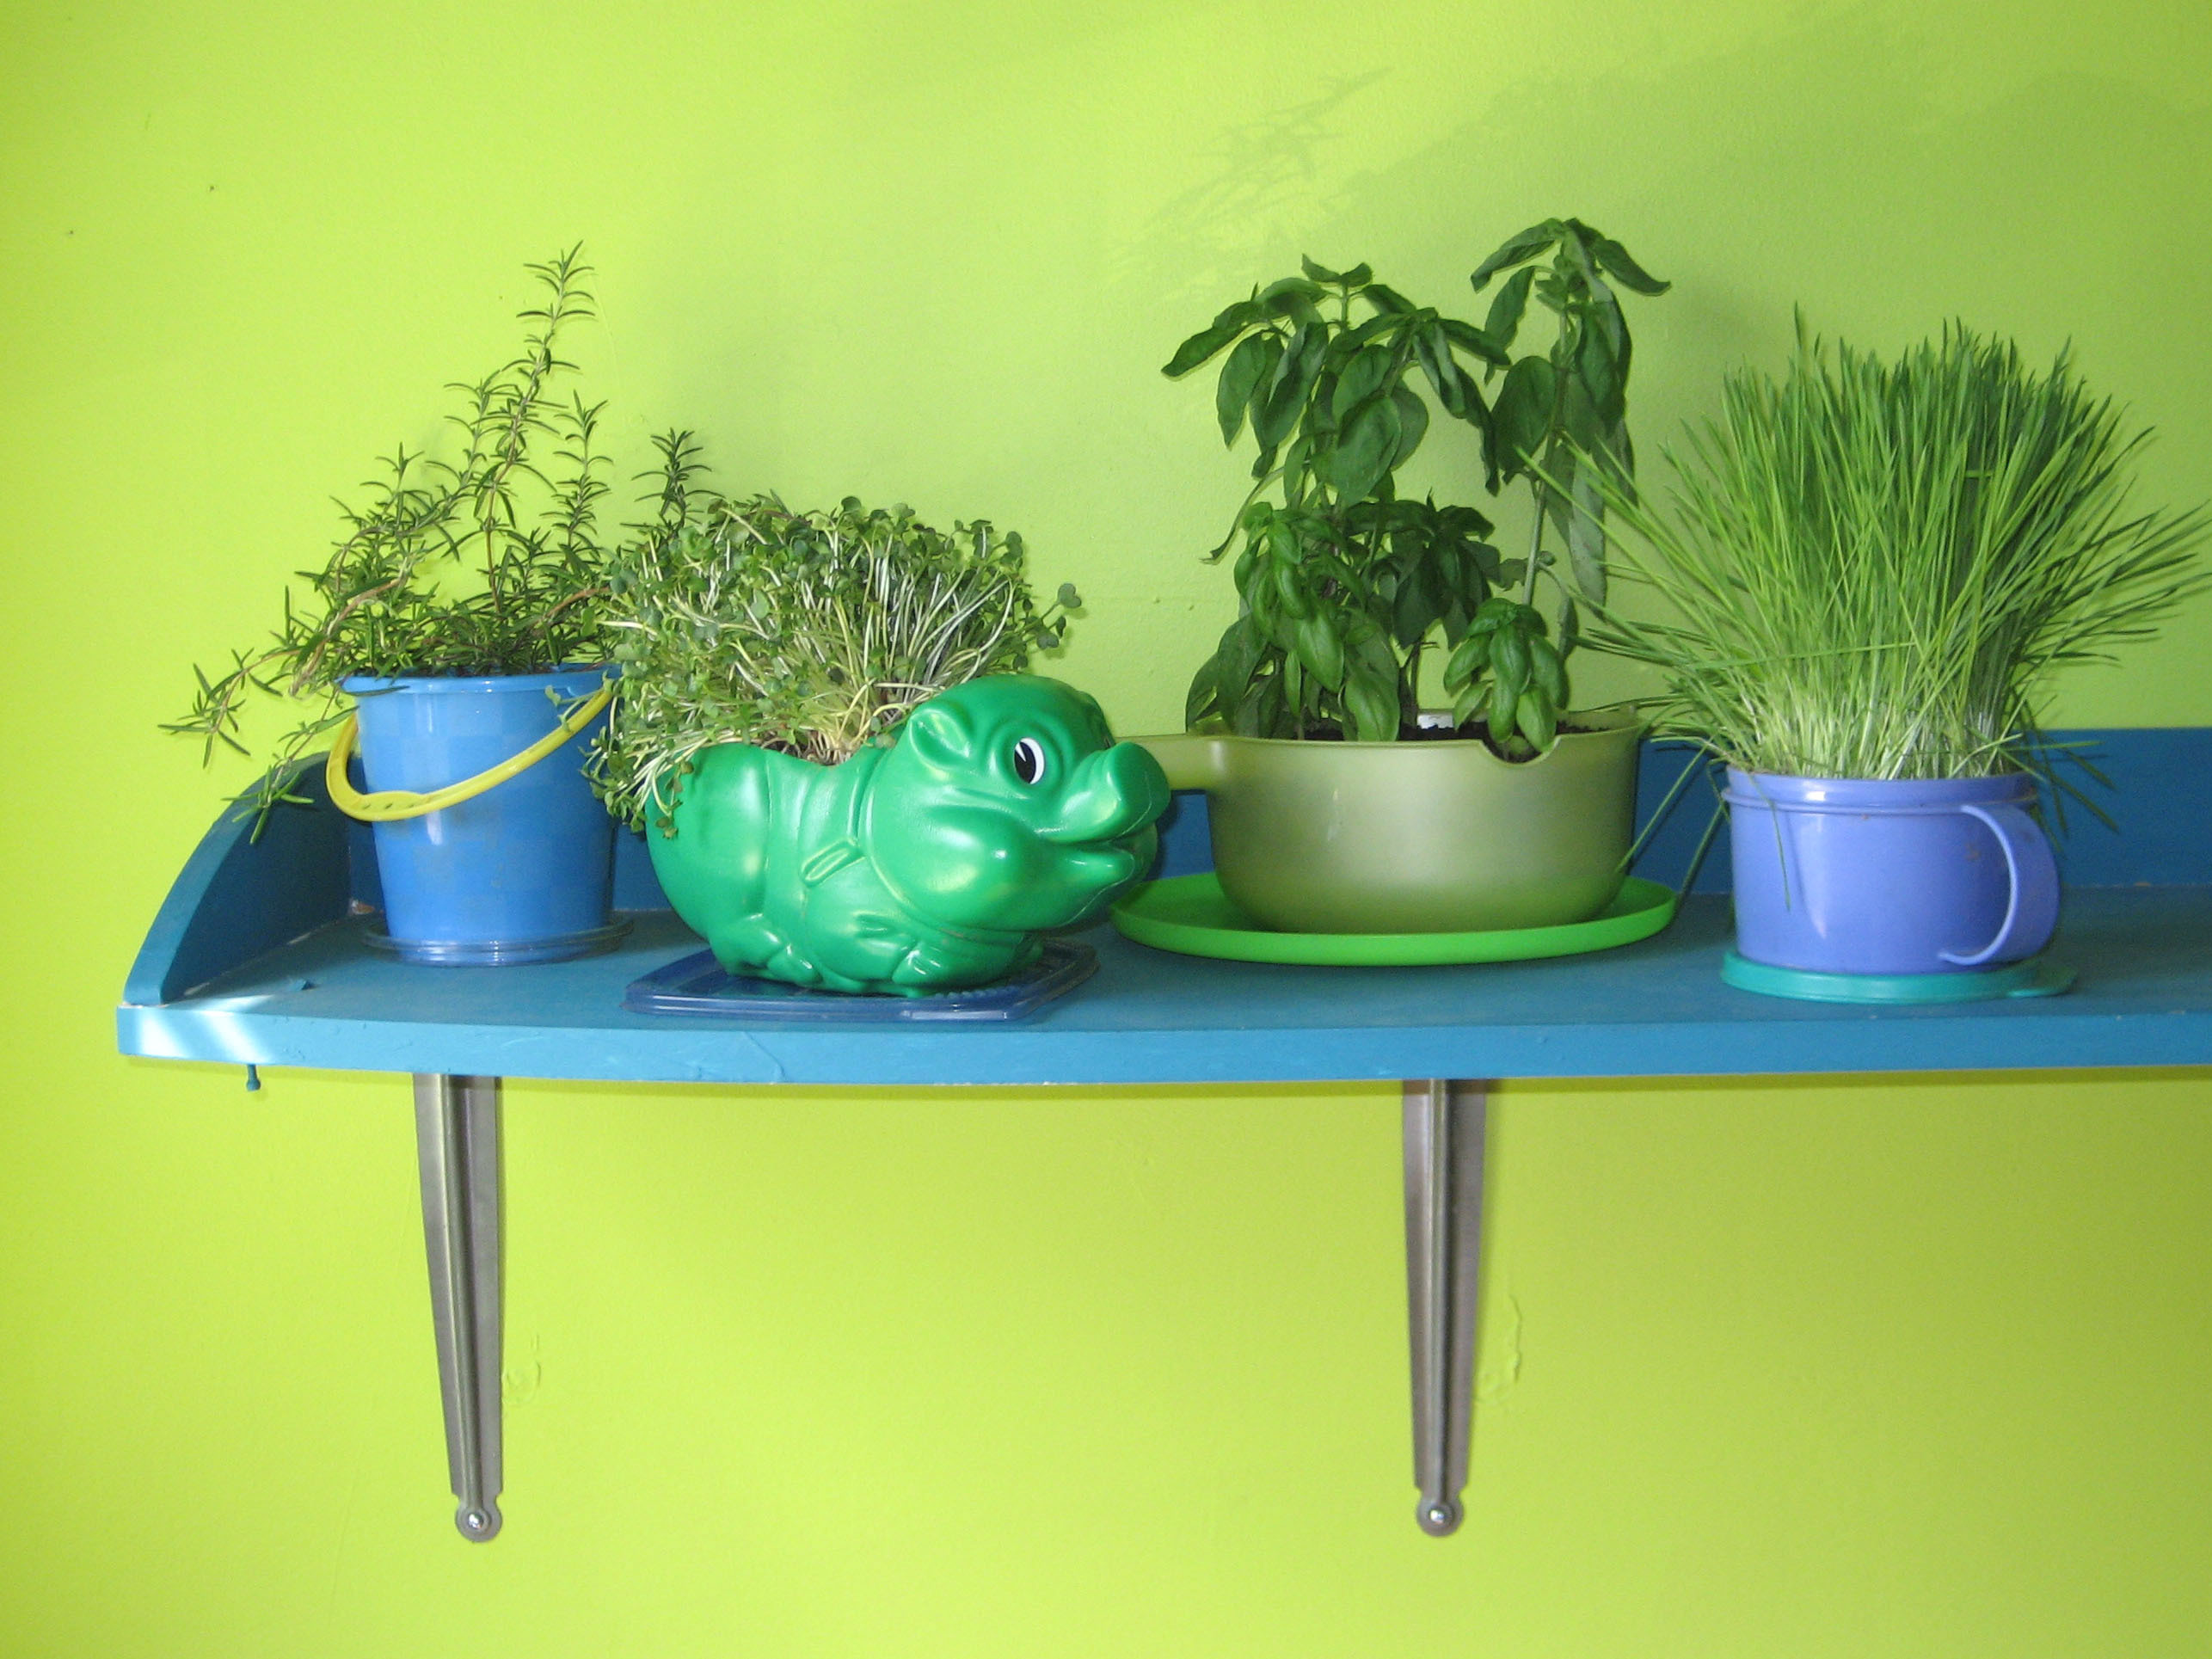 New Project: Plastic Herb Planters